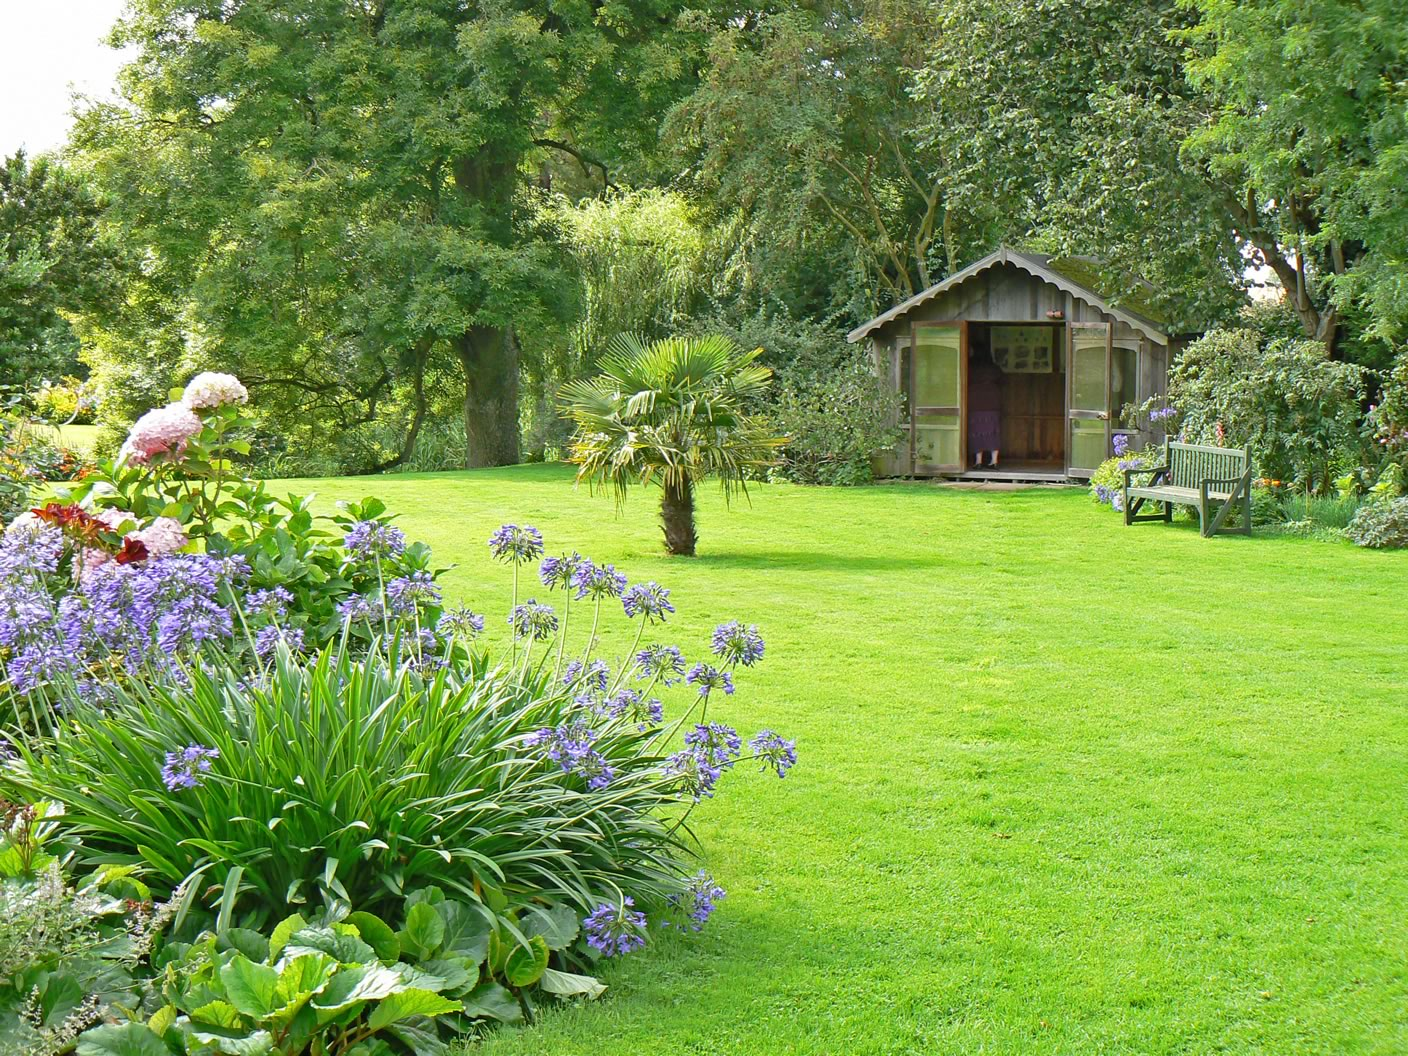 Garden lawn ideas lawn and hedge care for Outdoor garden ideas